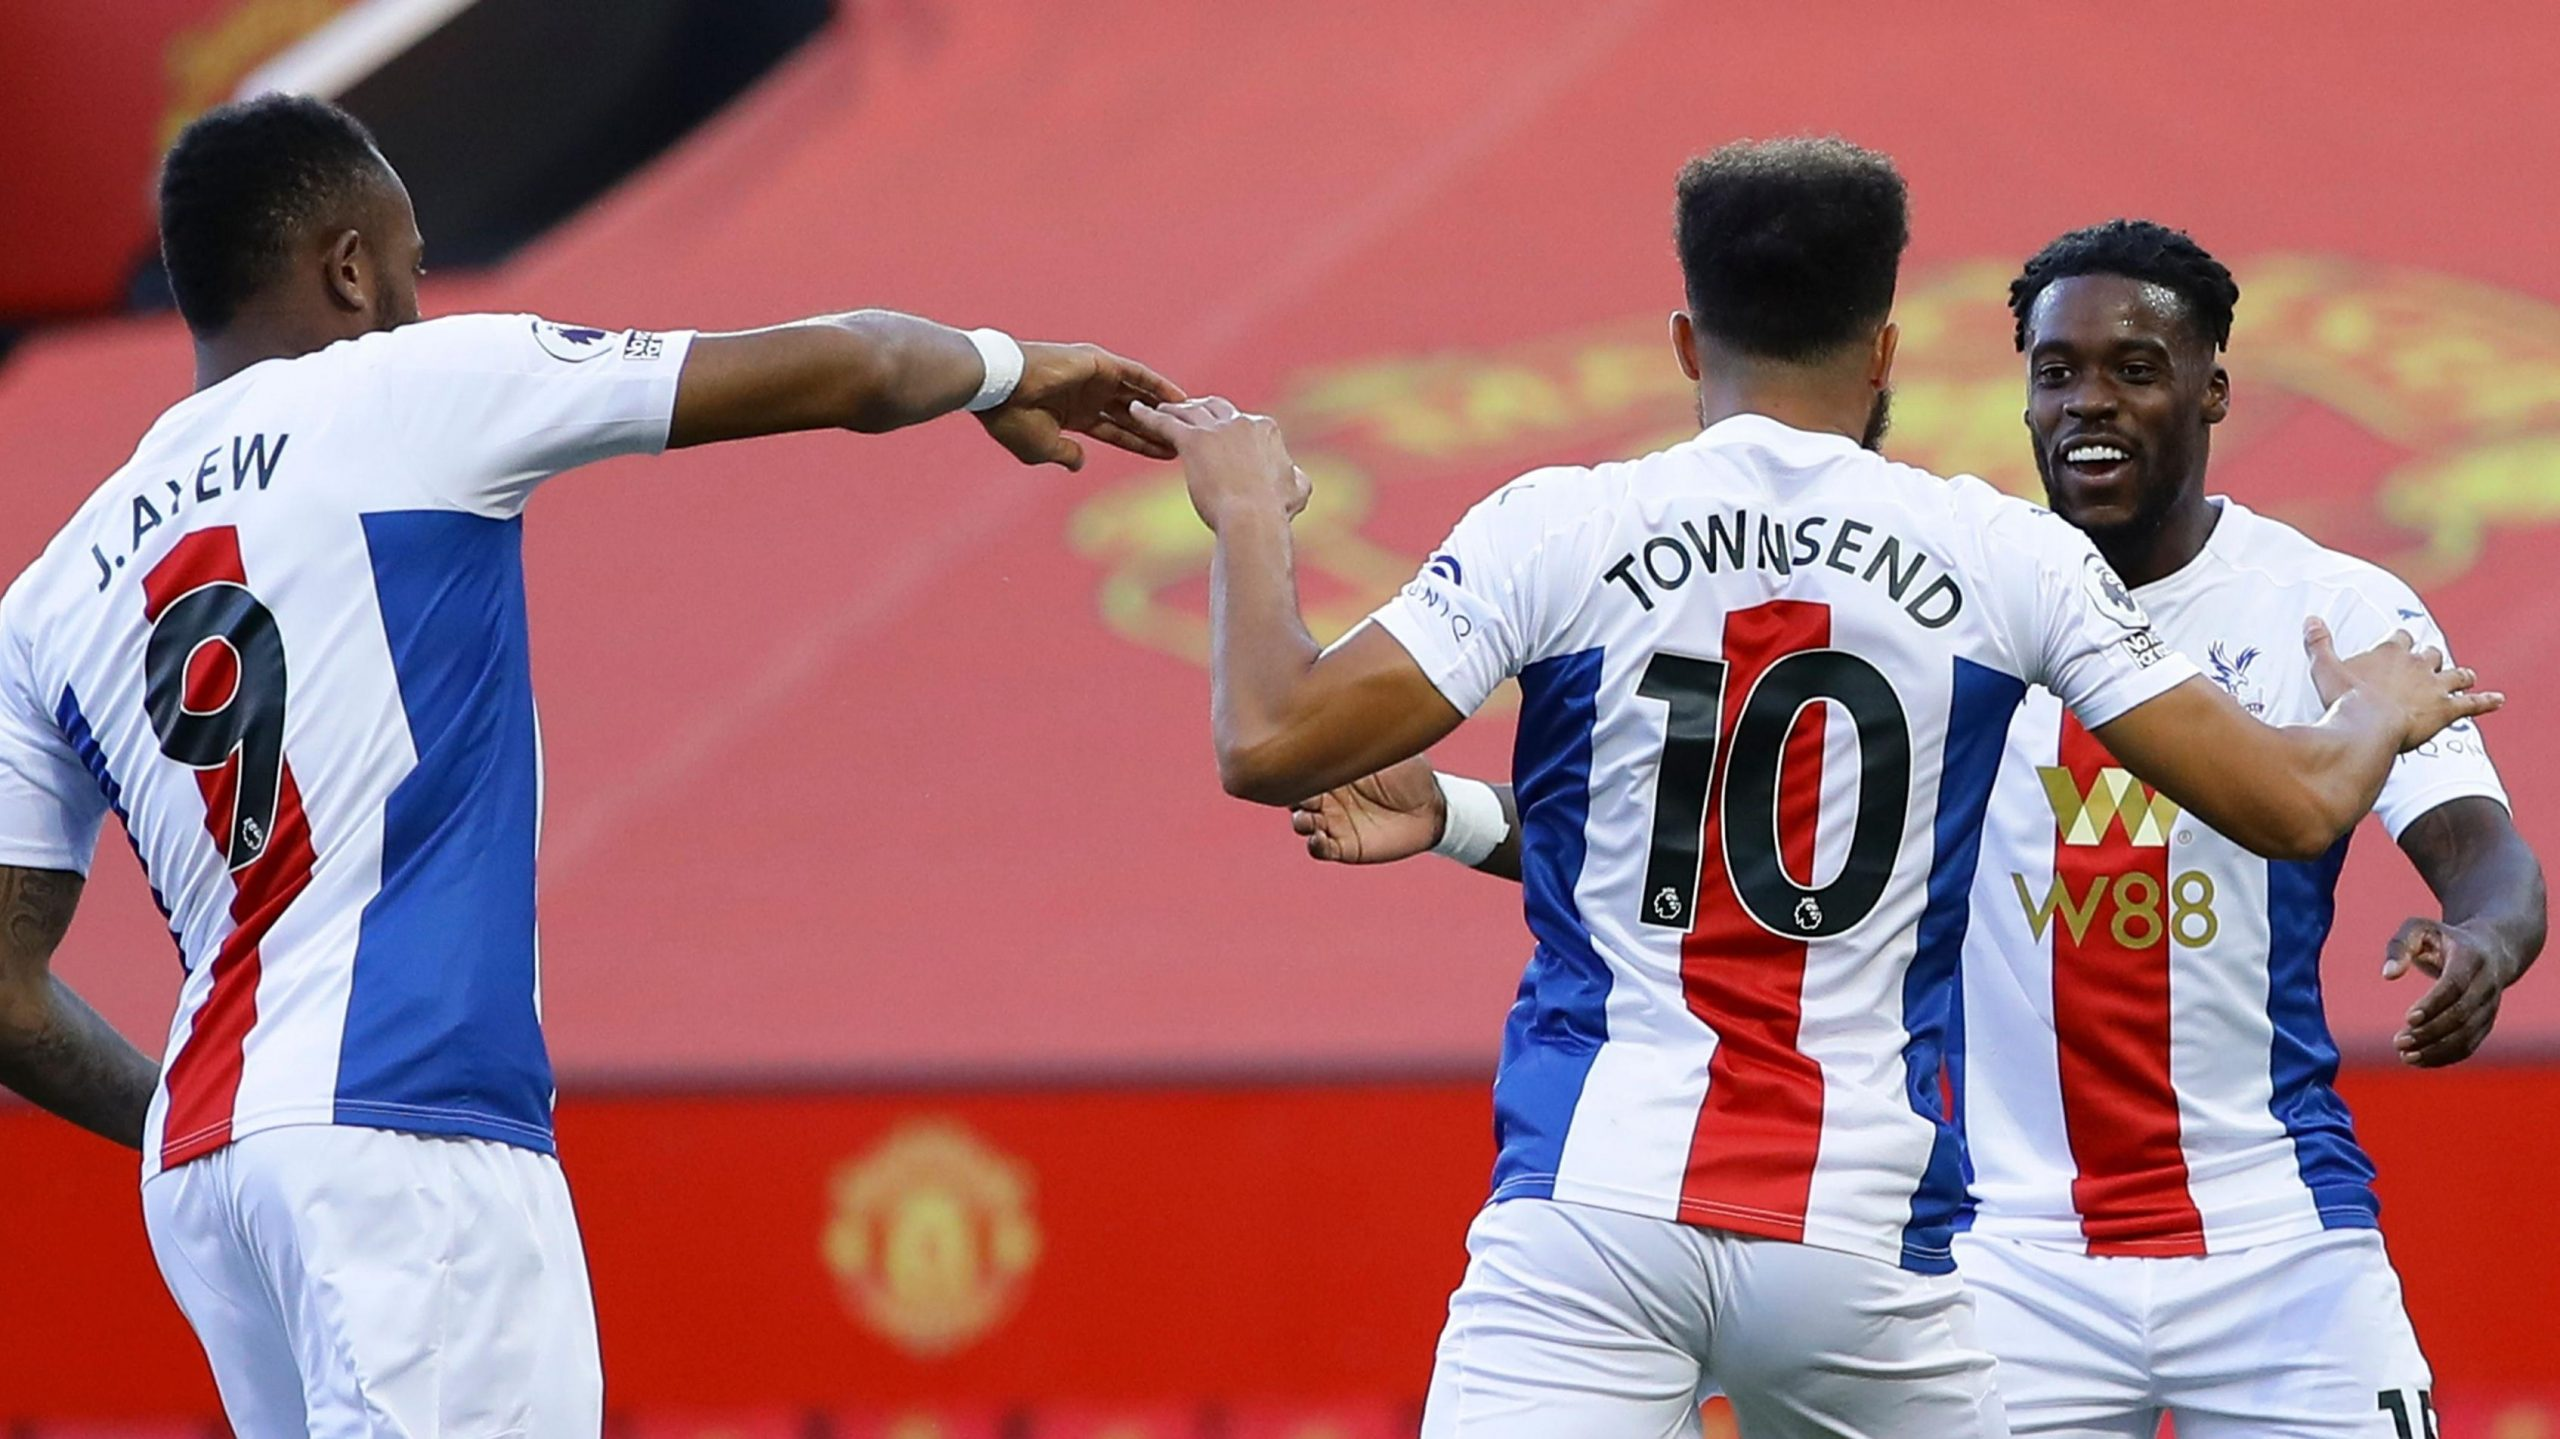 Premier League: Ighalo, Eze In Action As Palace Shock Man United At Old Trafford